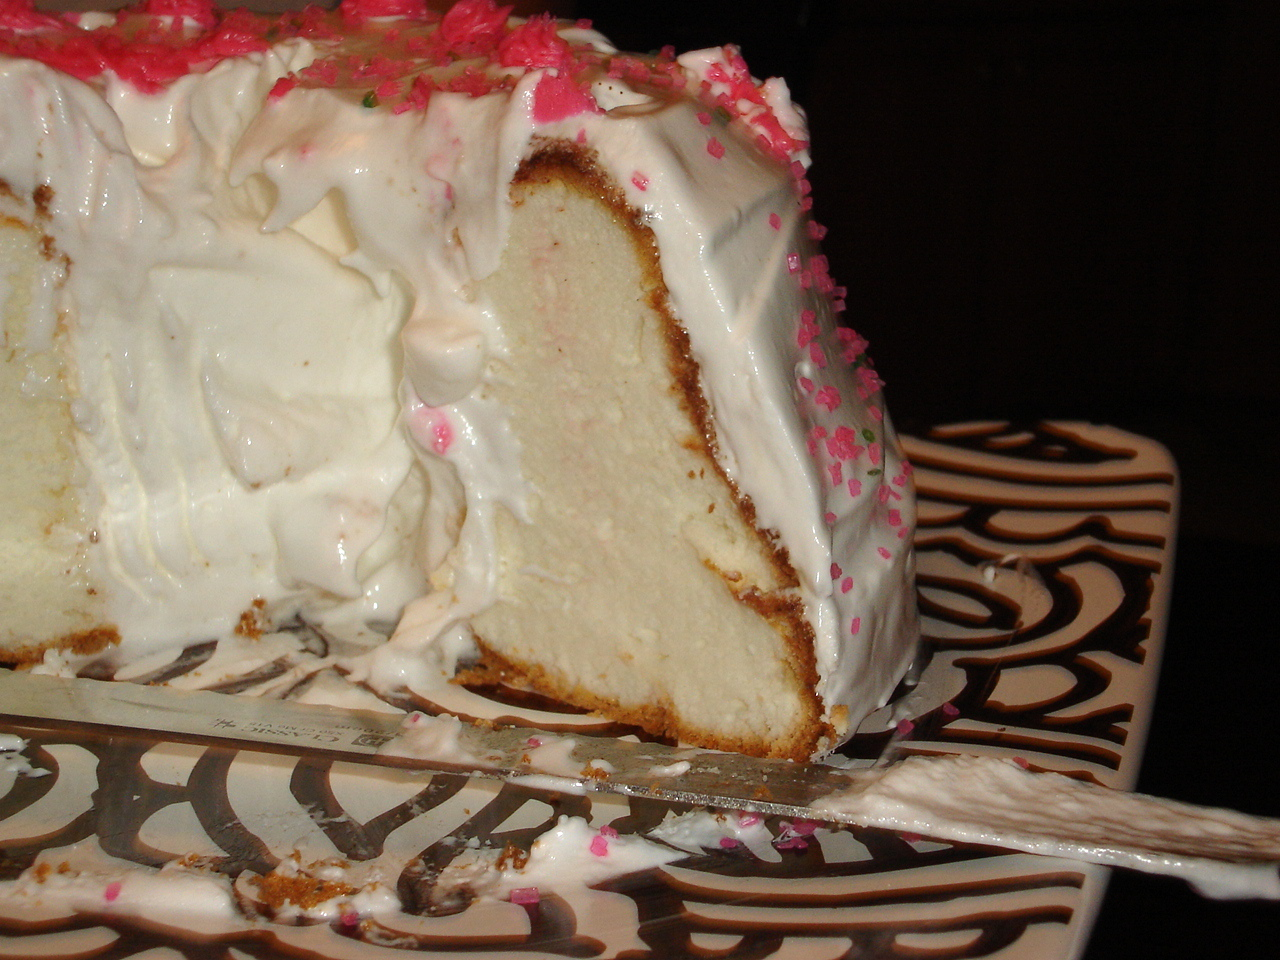 Cake Doctor Icing Recipes: Angel Food Cake With 7-Minute Icing